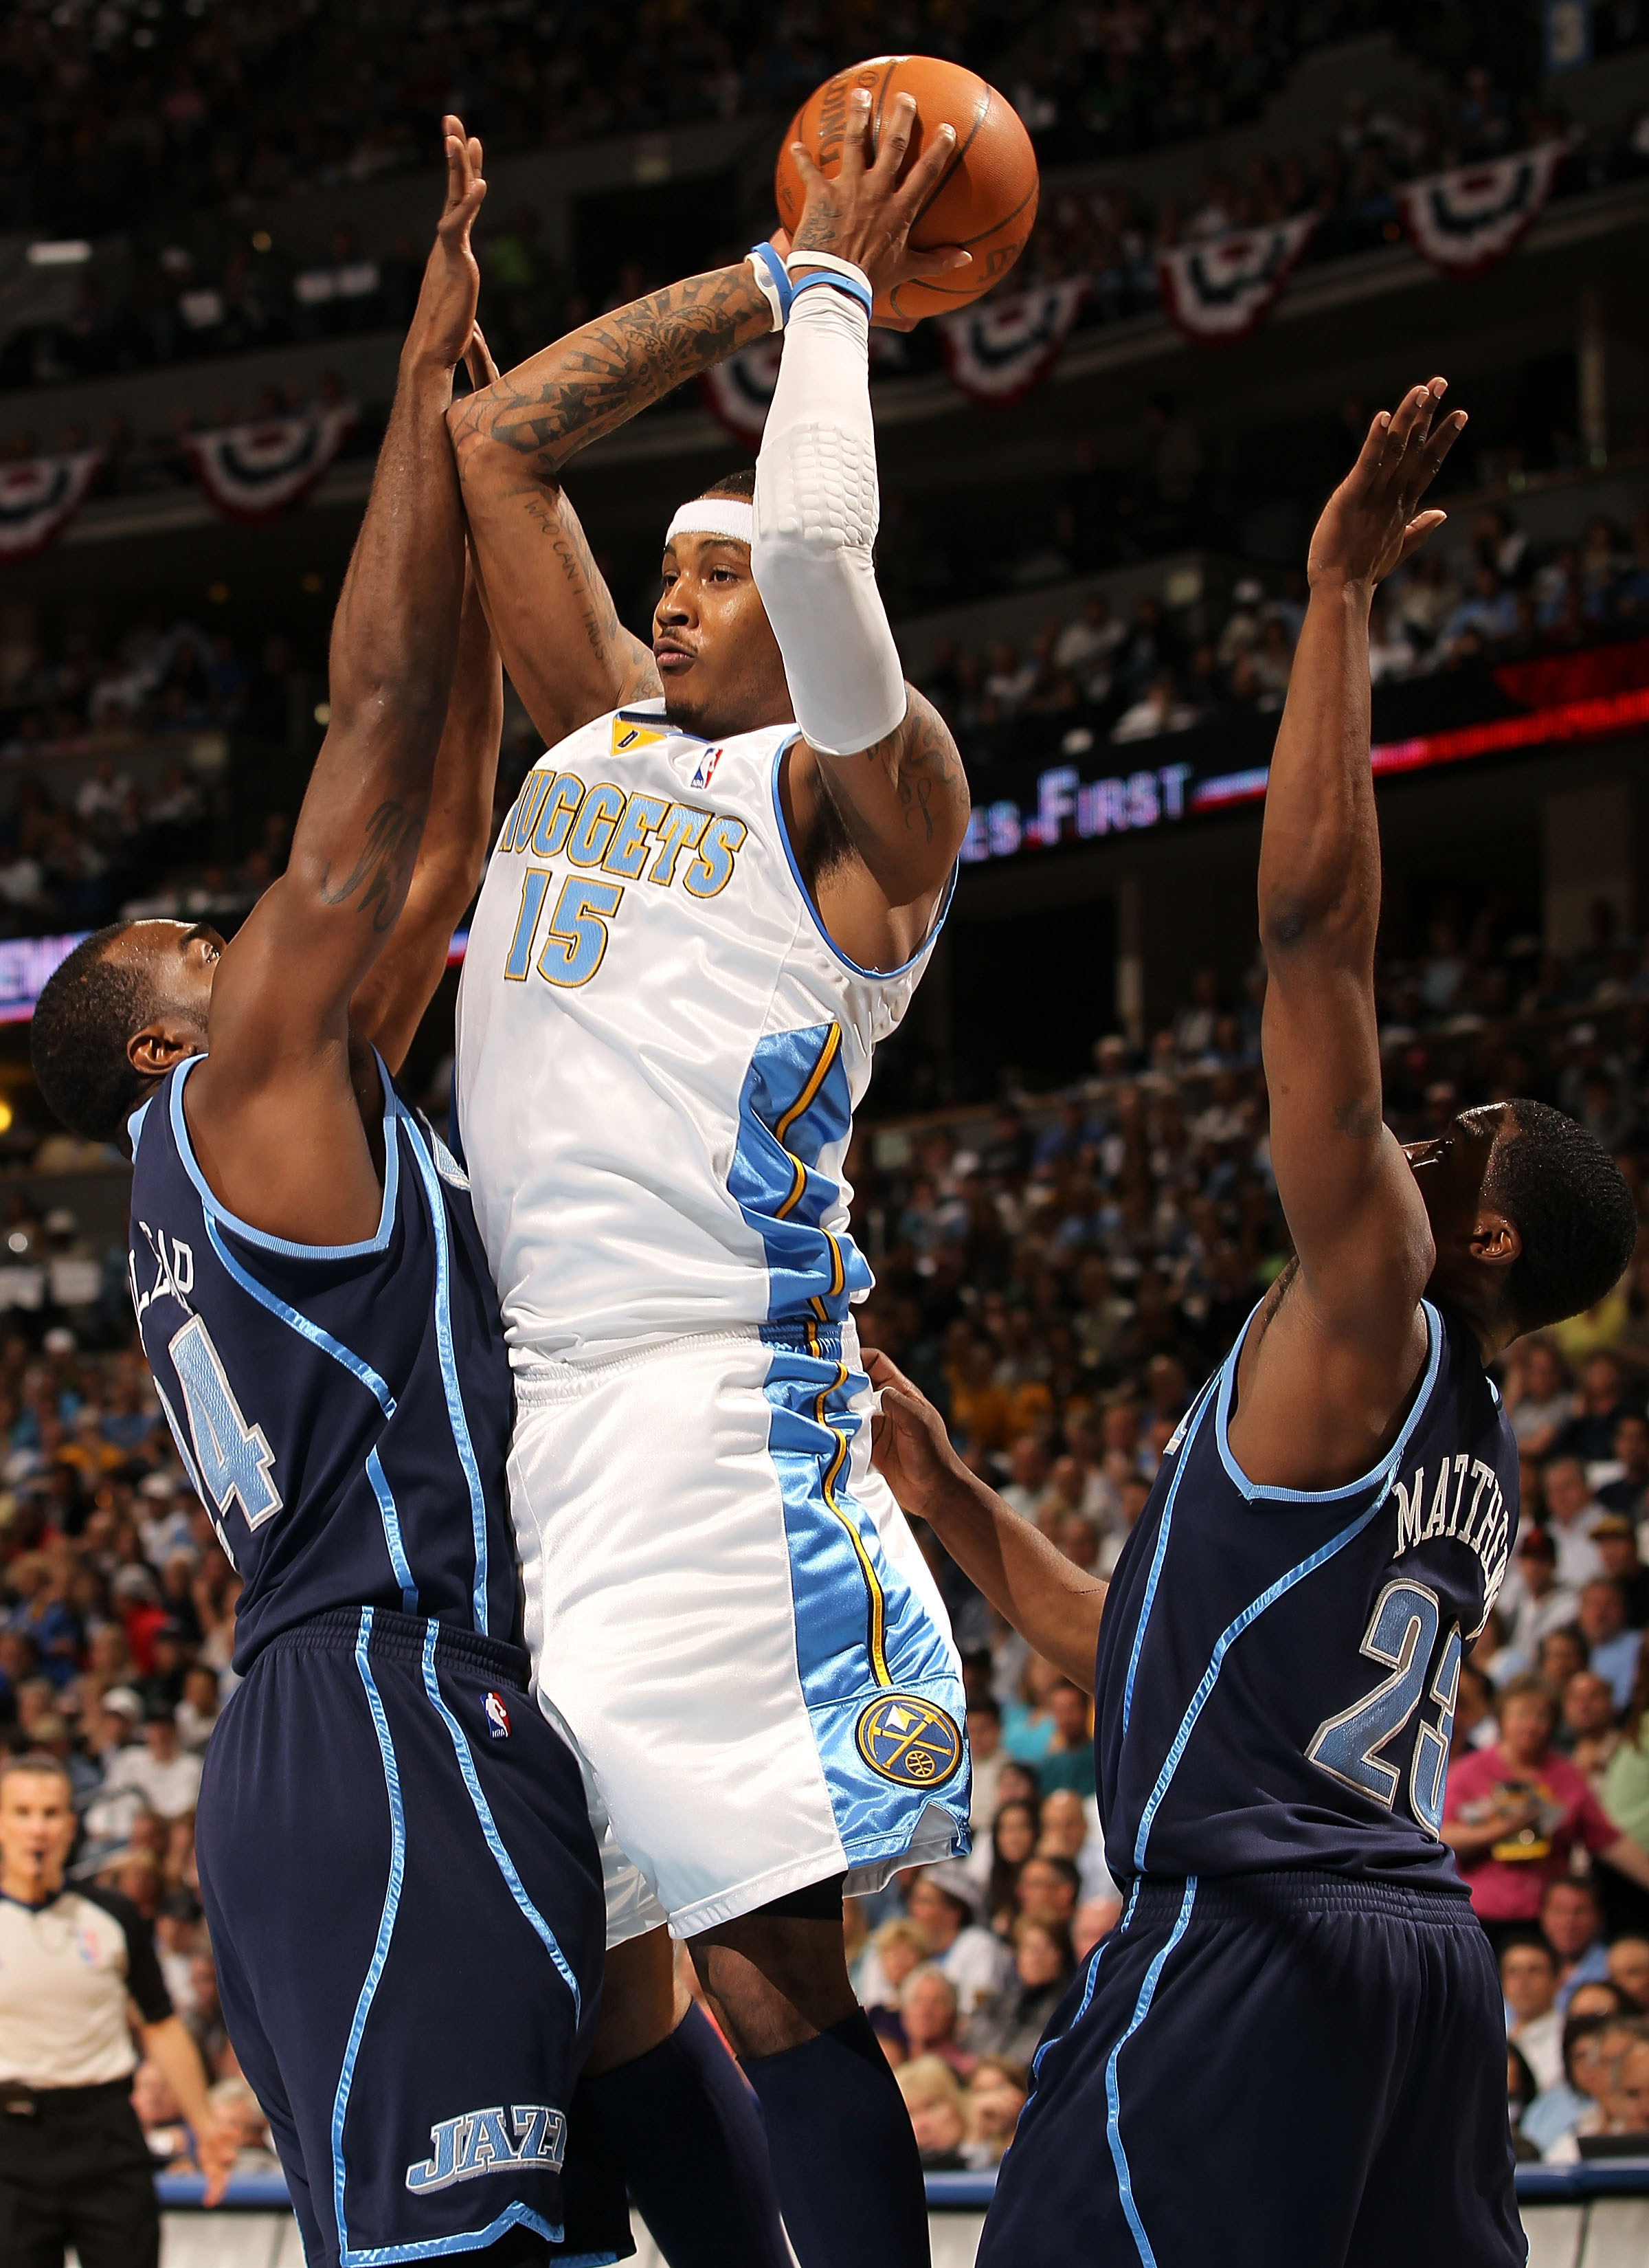 DENVER - APRIL 19:  Carmelo Anthony #15 of the Denver Nuggets looks to make a pass between the defense of Paul Millsap #24 and Wesley Mathews #23 of the Utah Jazz in Game Two of the NBA Western Conference Quarterfinals at the Pepsi Center on April 19, 201